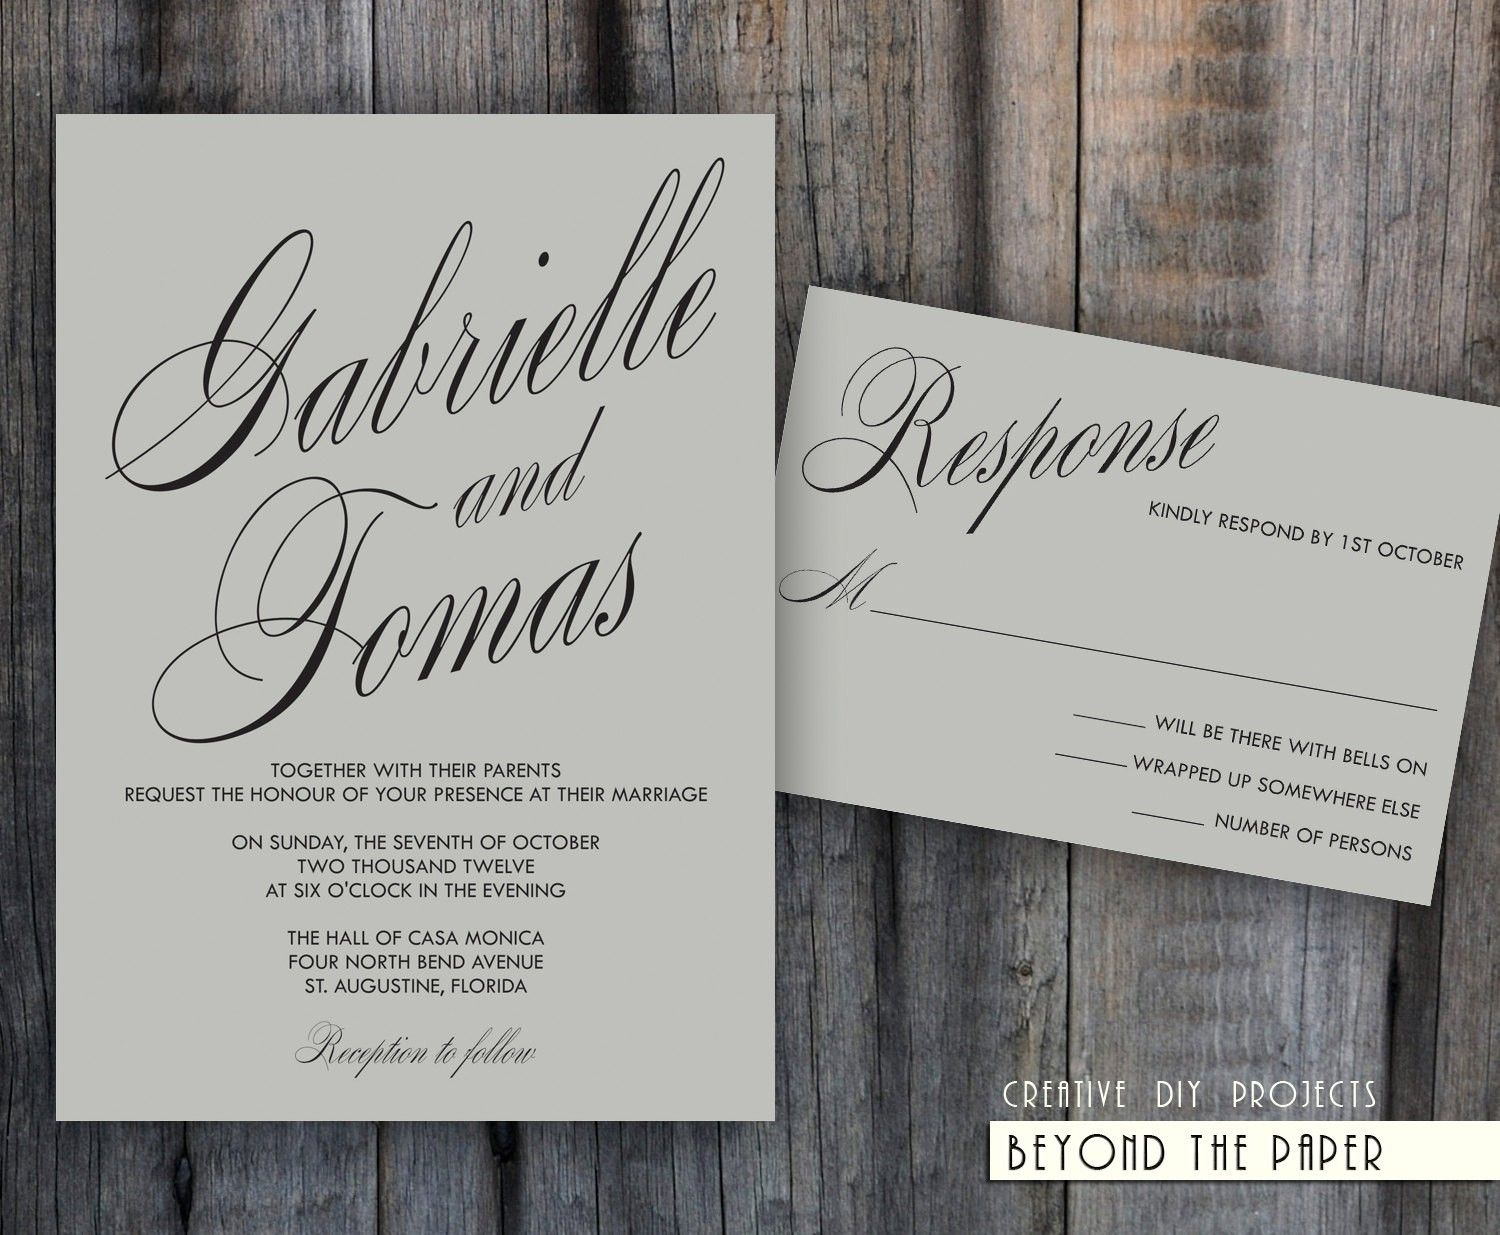 modern wedding invitation templates free downloads | Tweet | When I ...